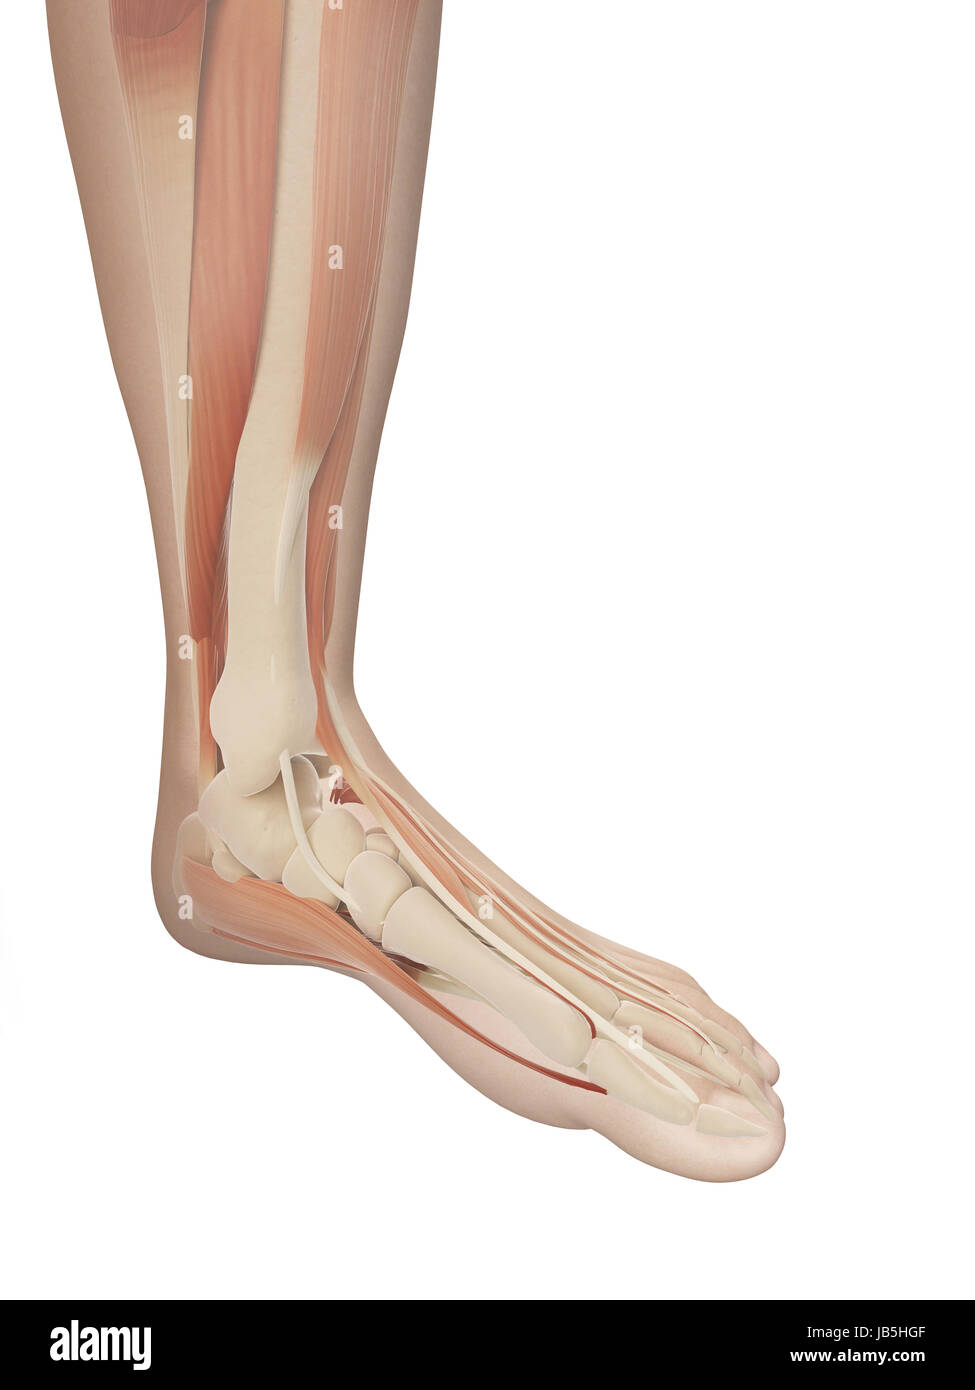 muscular foot anatomy Stock Photo: 144567711 - Alamy